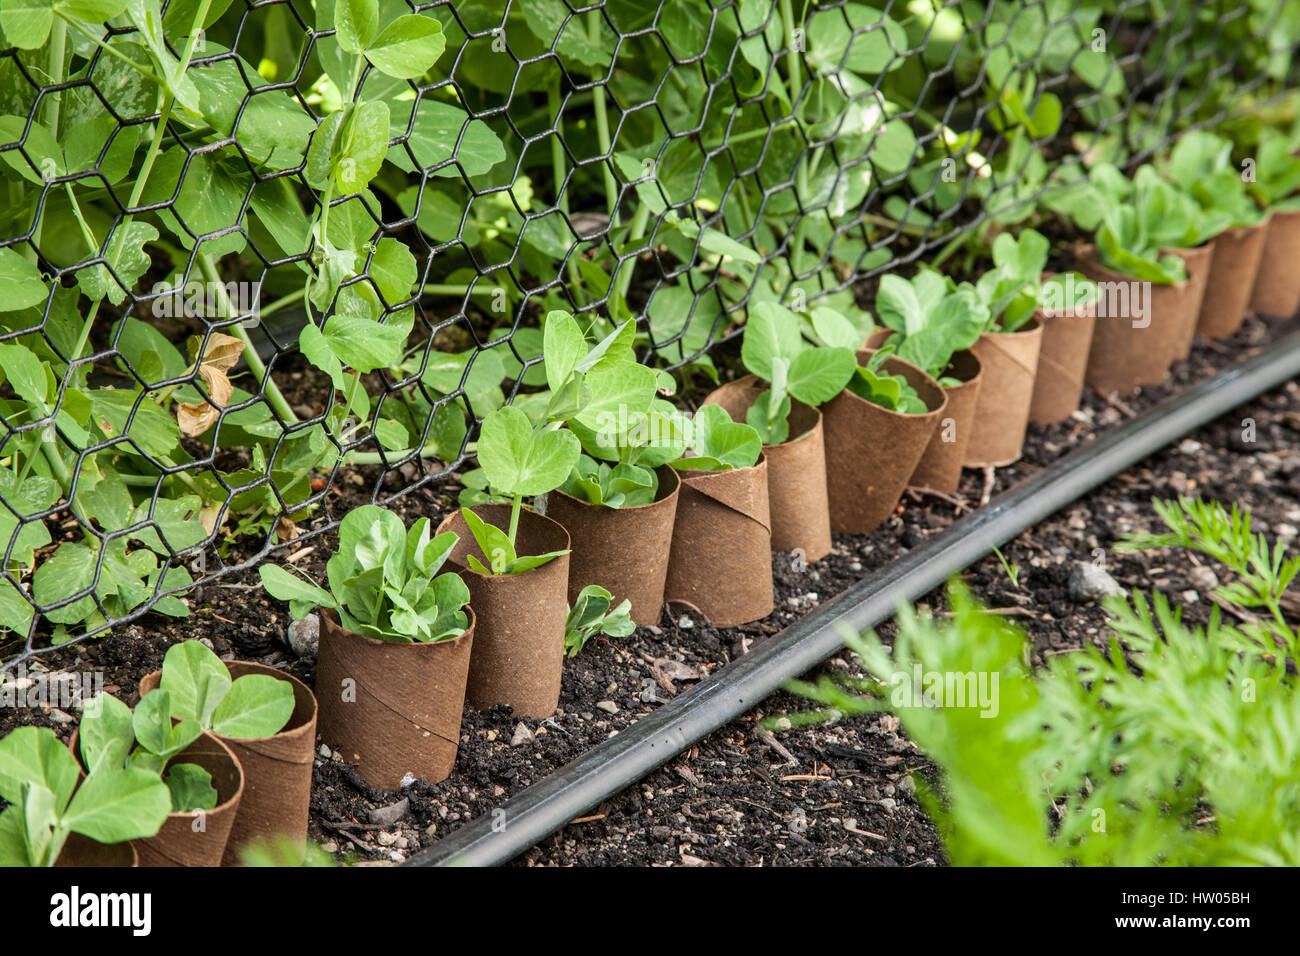 Snow peas seedlings with empty toilet paper rolls around them to protect from cutworms, in a garden in western Washington, - Stock Image